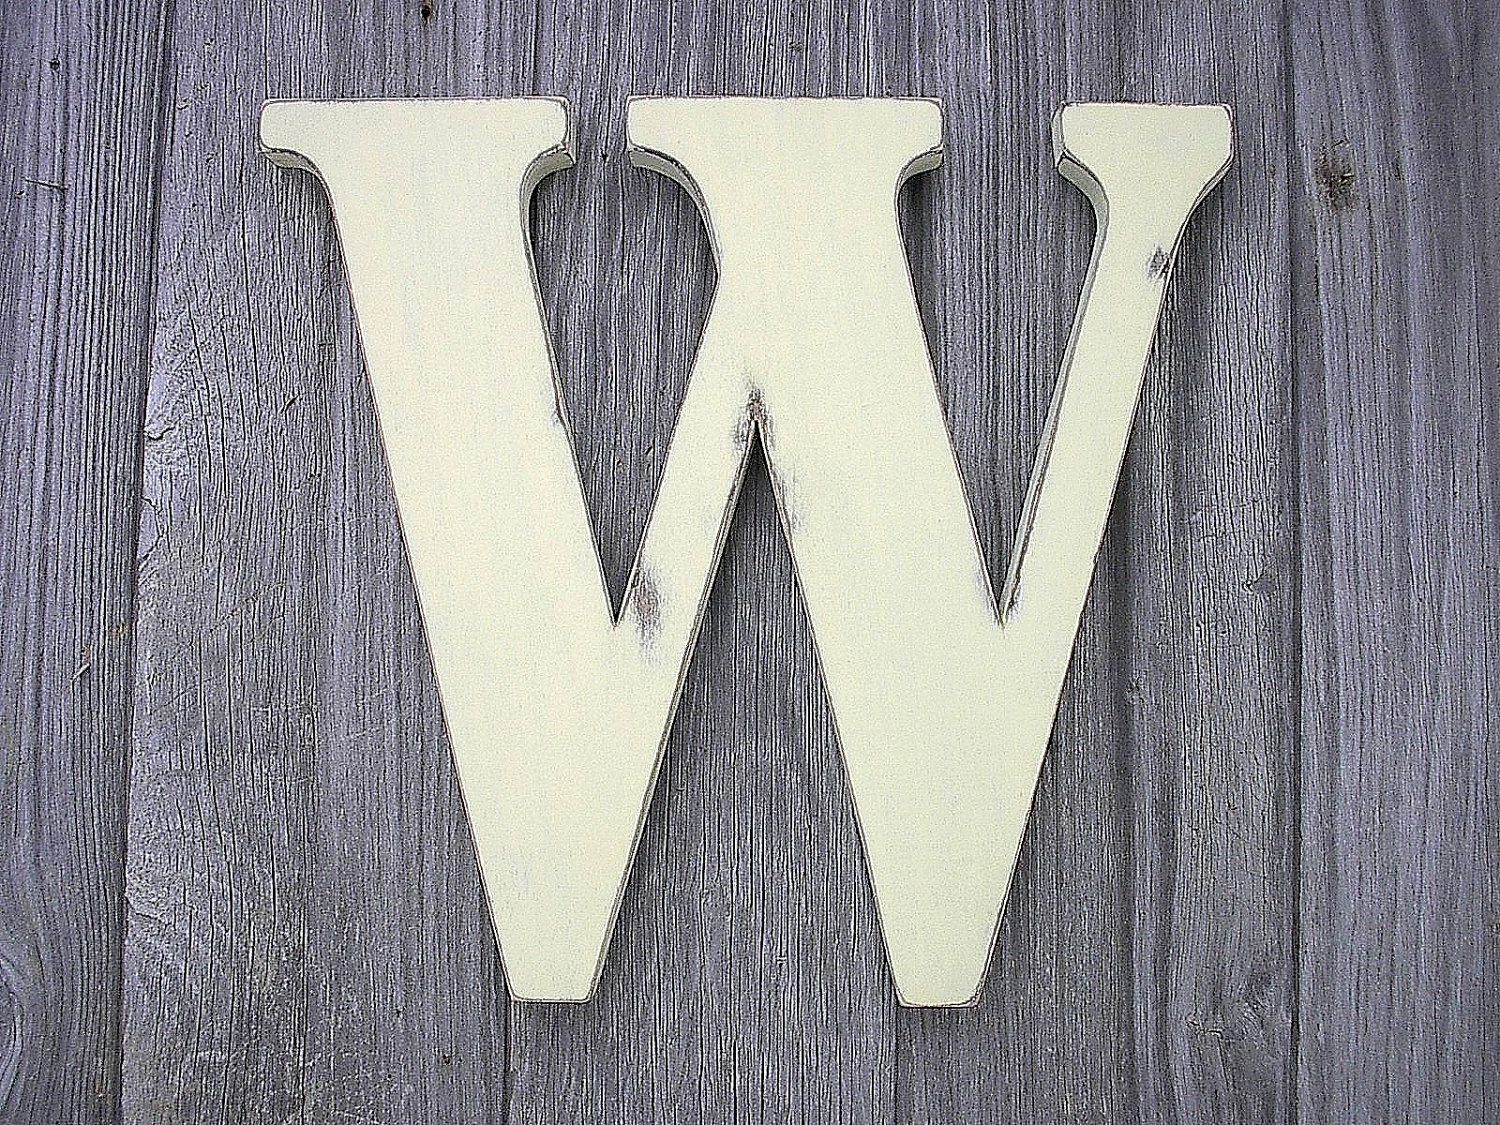 Rustic Shabby Chic Wedding Decor Guestbook Wooden Letter W 12 Inch Ivory Wall D Shabby Chic Wedding Rustic Shabby Chic Wedding Decor Rustic Shabby Chic Wedding